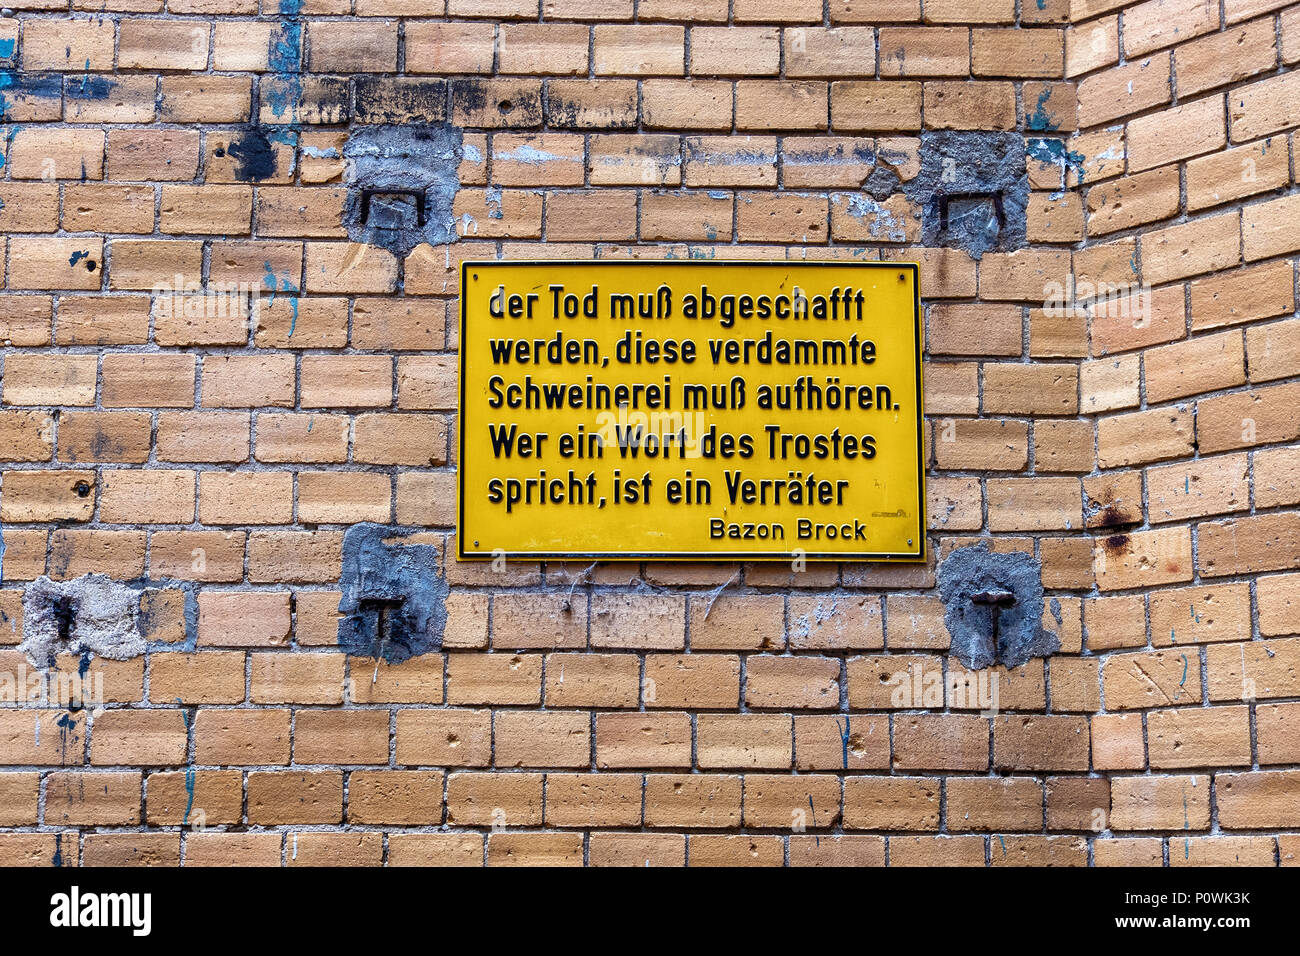 Berlin, Mitte Sophie-Gips-Höfe. Yellow plaque with quote by Bazon Brook on Courtyard wall of Historic 19th century building                            - Stock Image